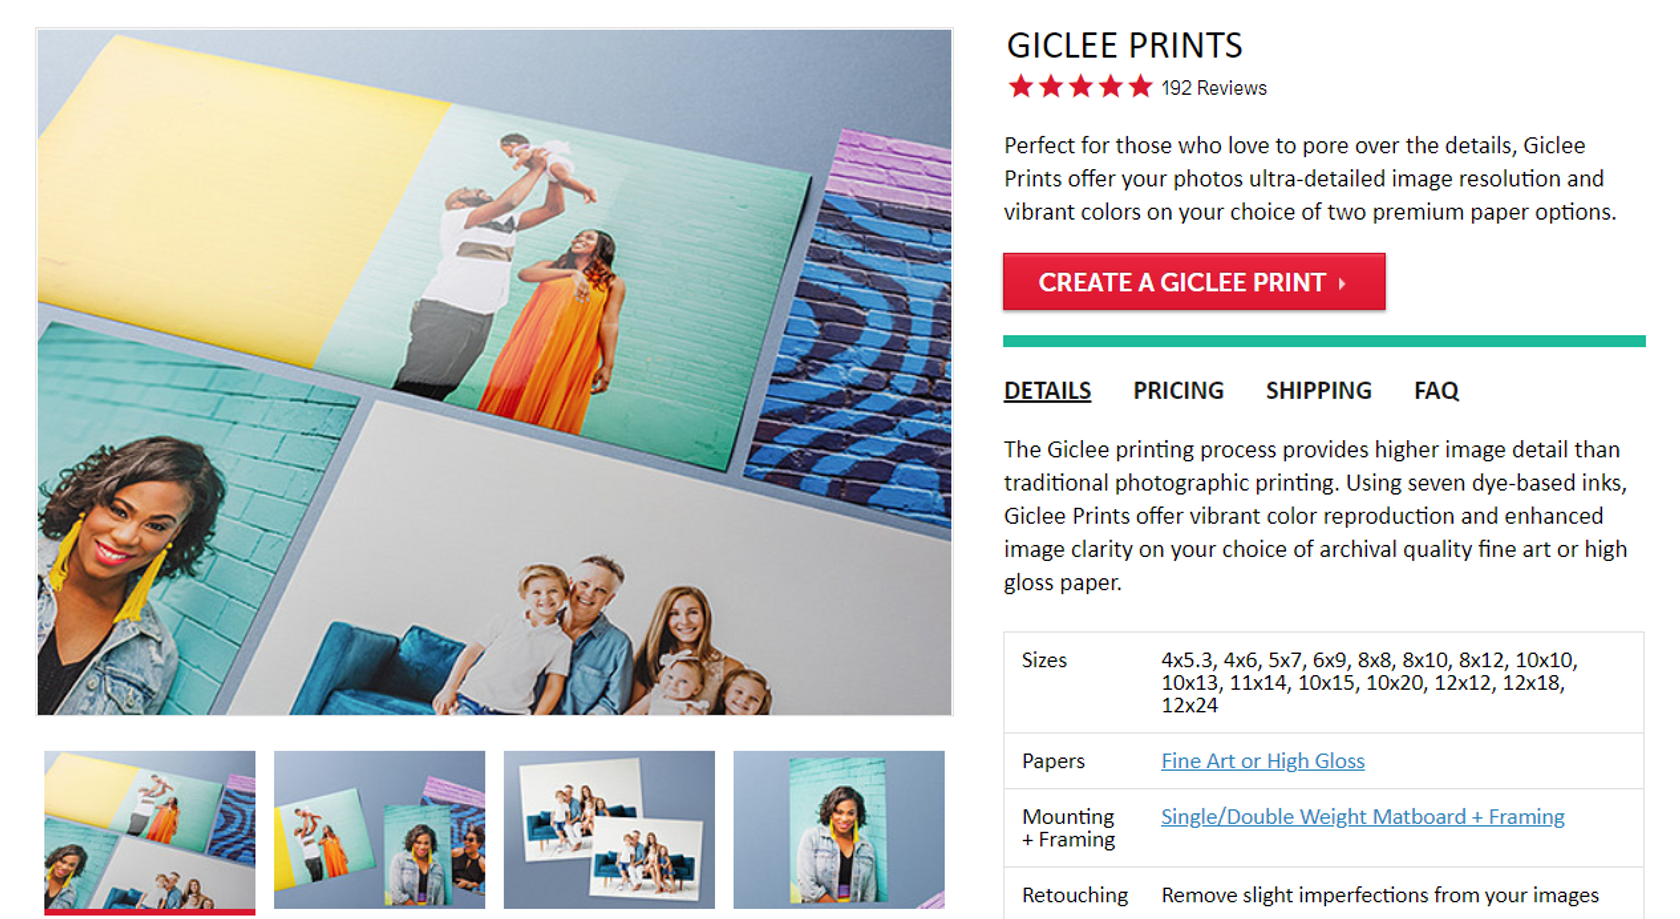 11 Best Choices for Online Photo Printing in 2019   Skylum